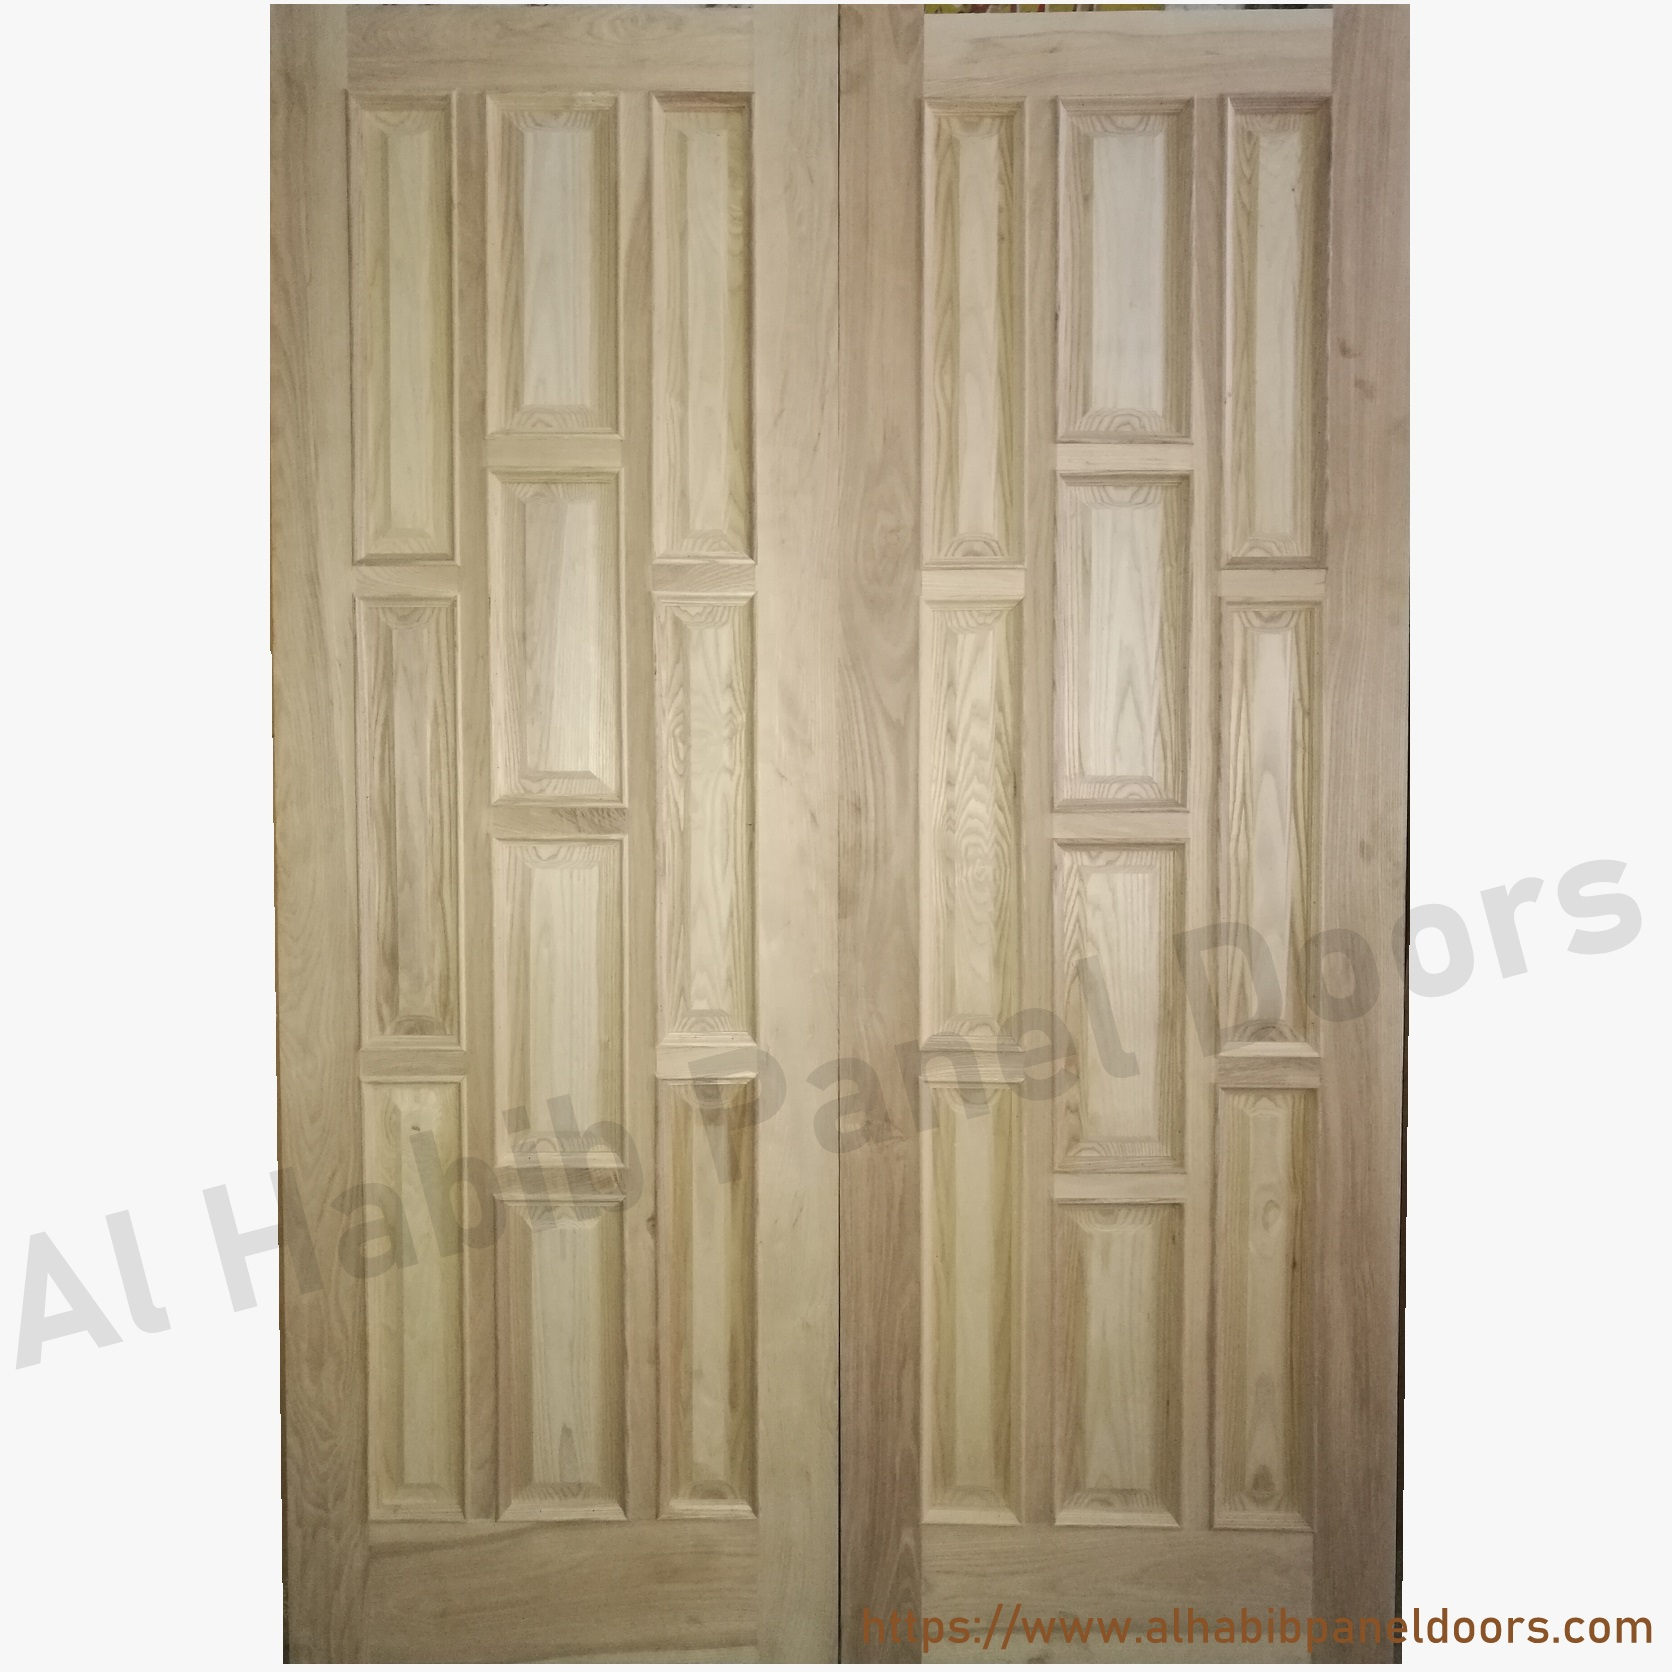 Solid wood main double door hpd413 main doors al habib for Double door wooden door